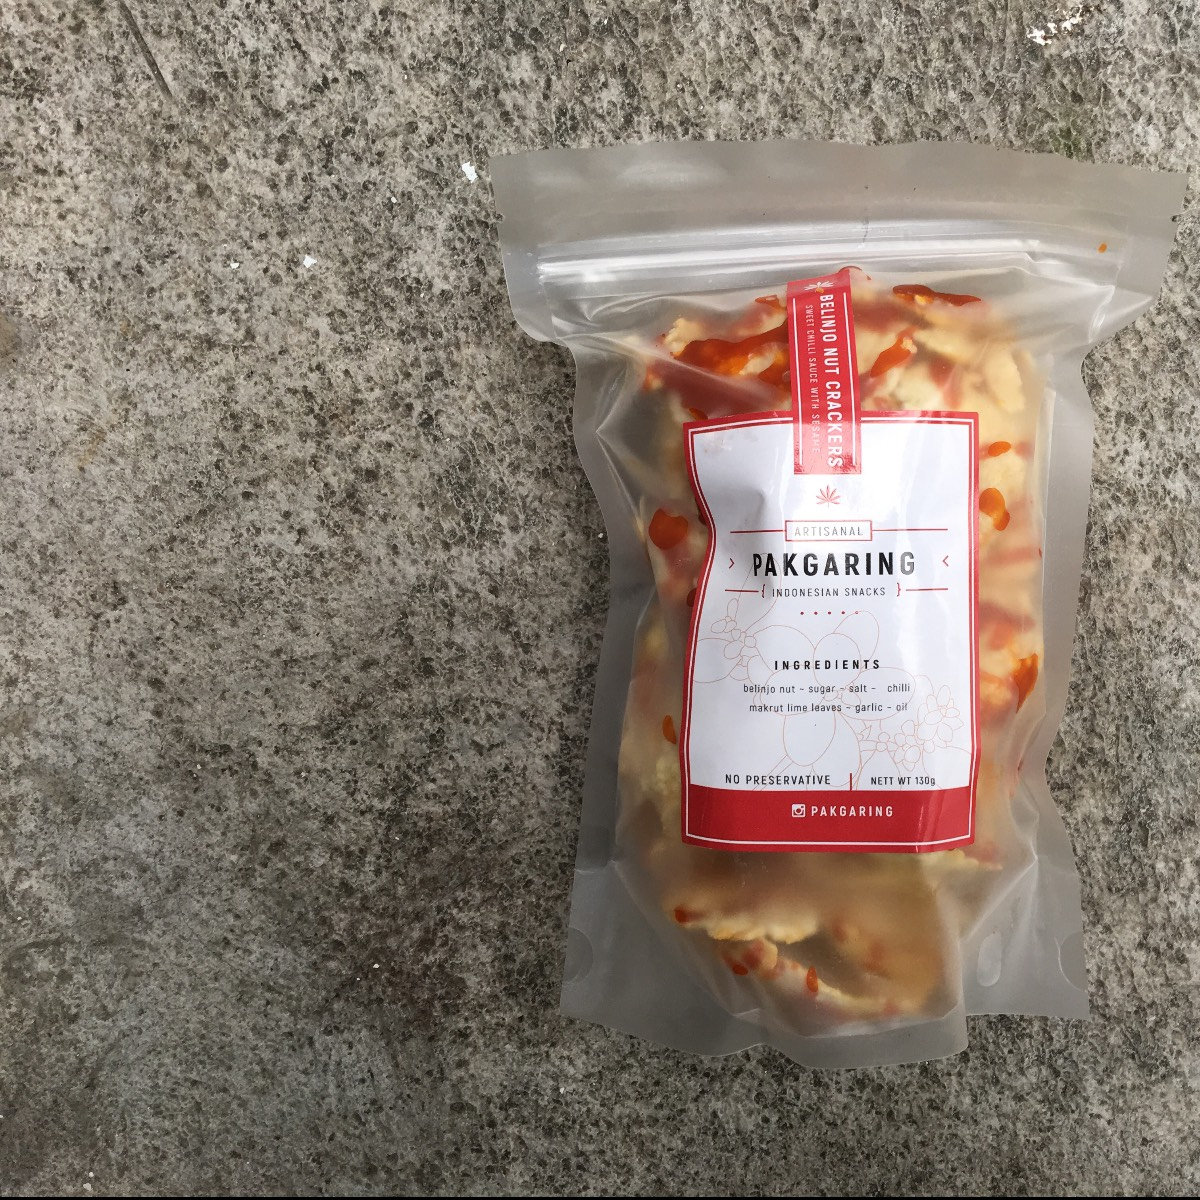 Emping Balado (plastik)